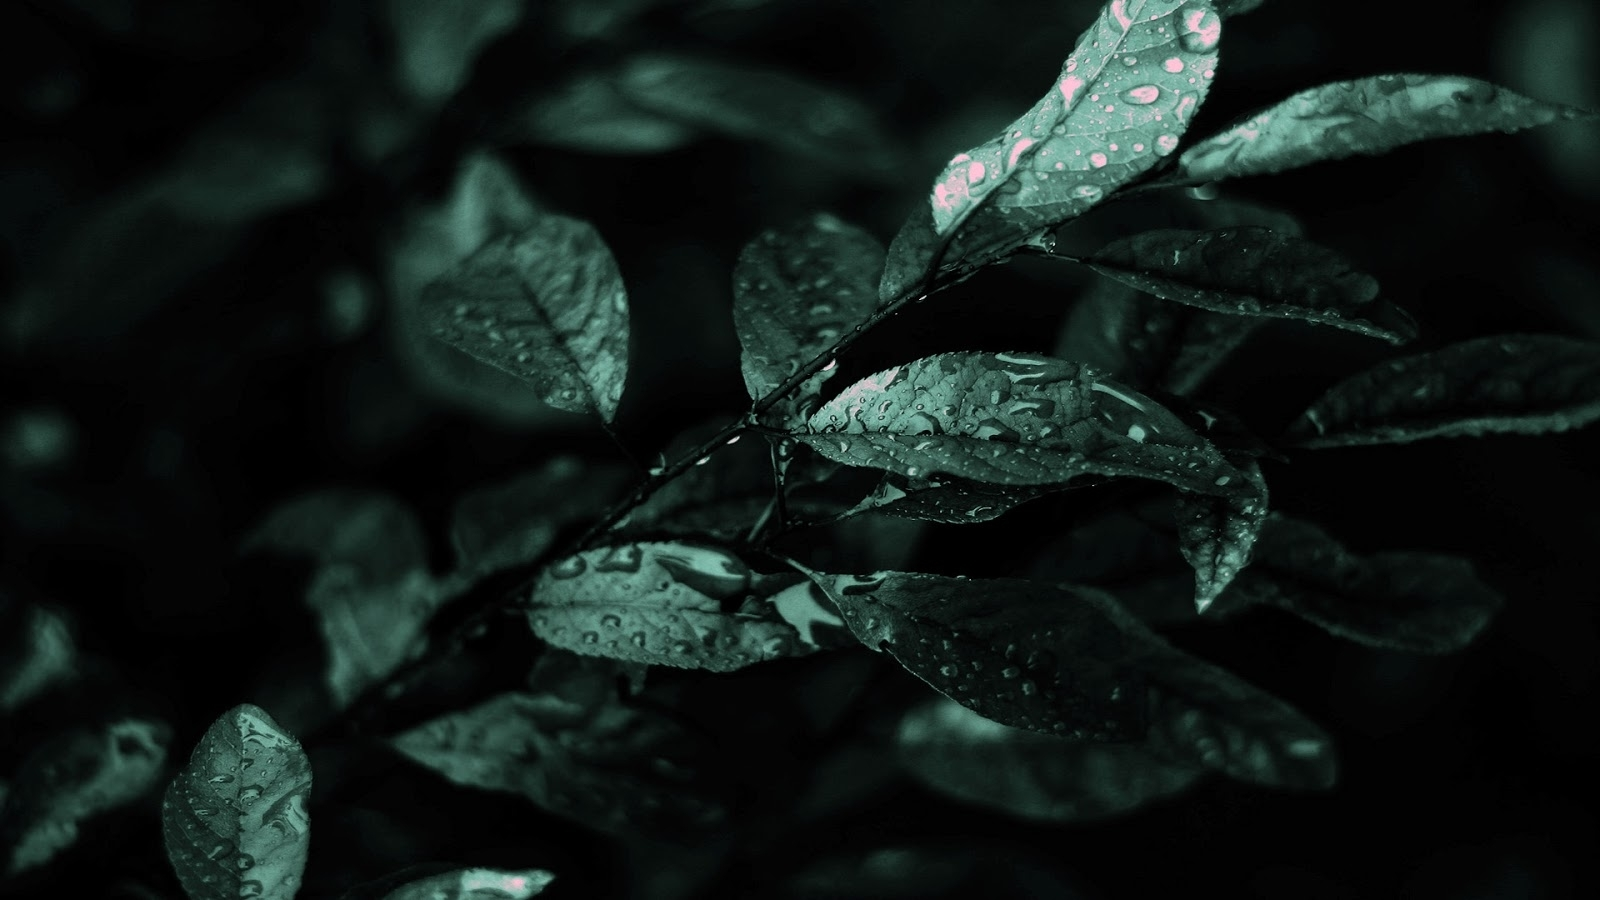 abstract dark nature hd wallpapers - hdwallpapers360 | hd wallpapers